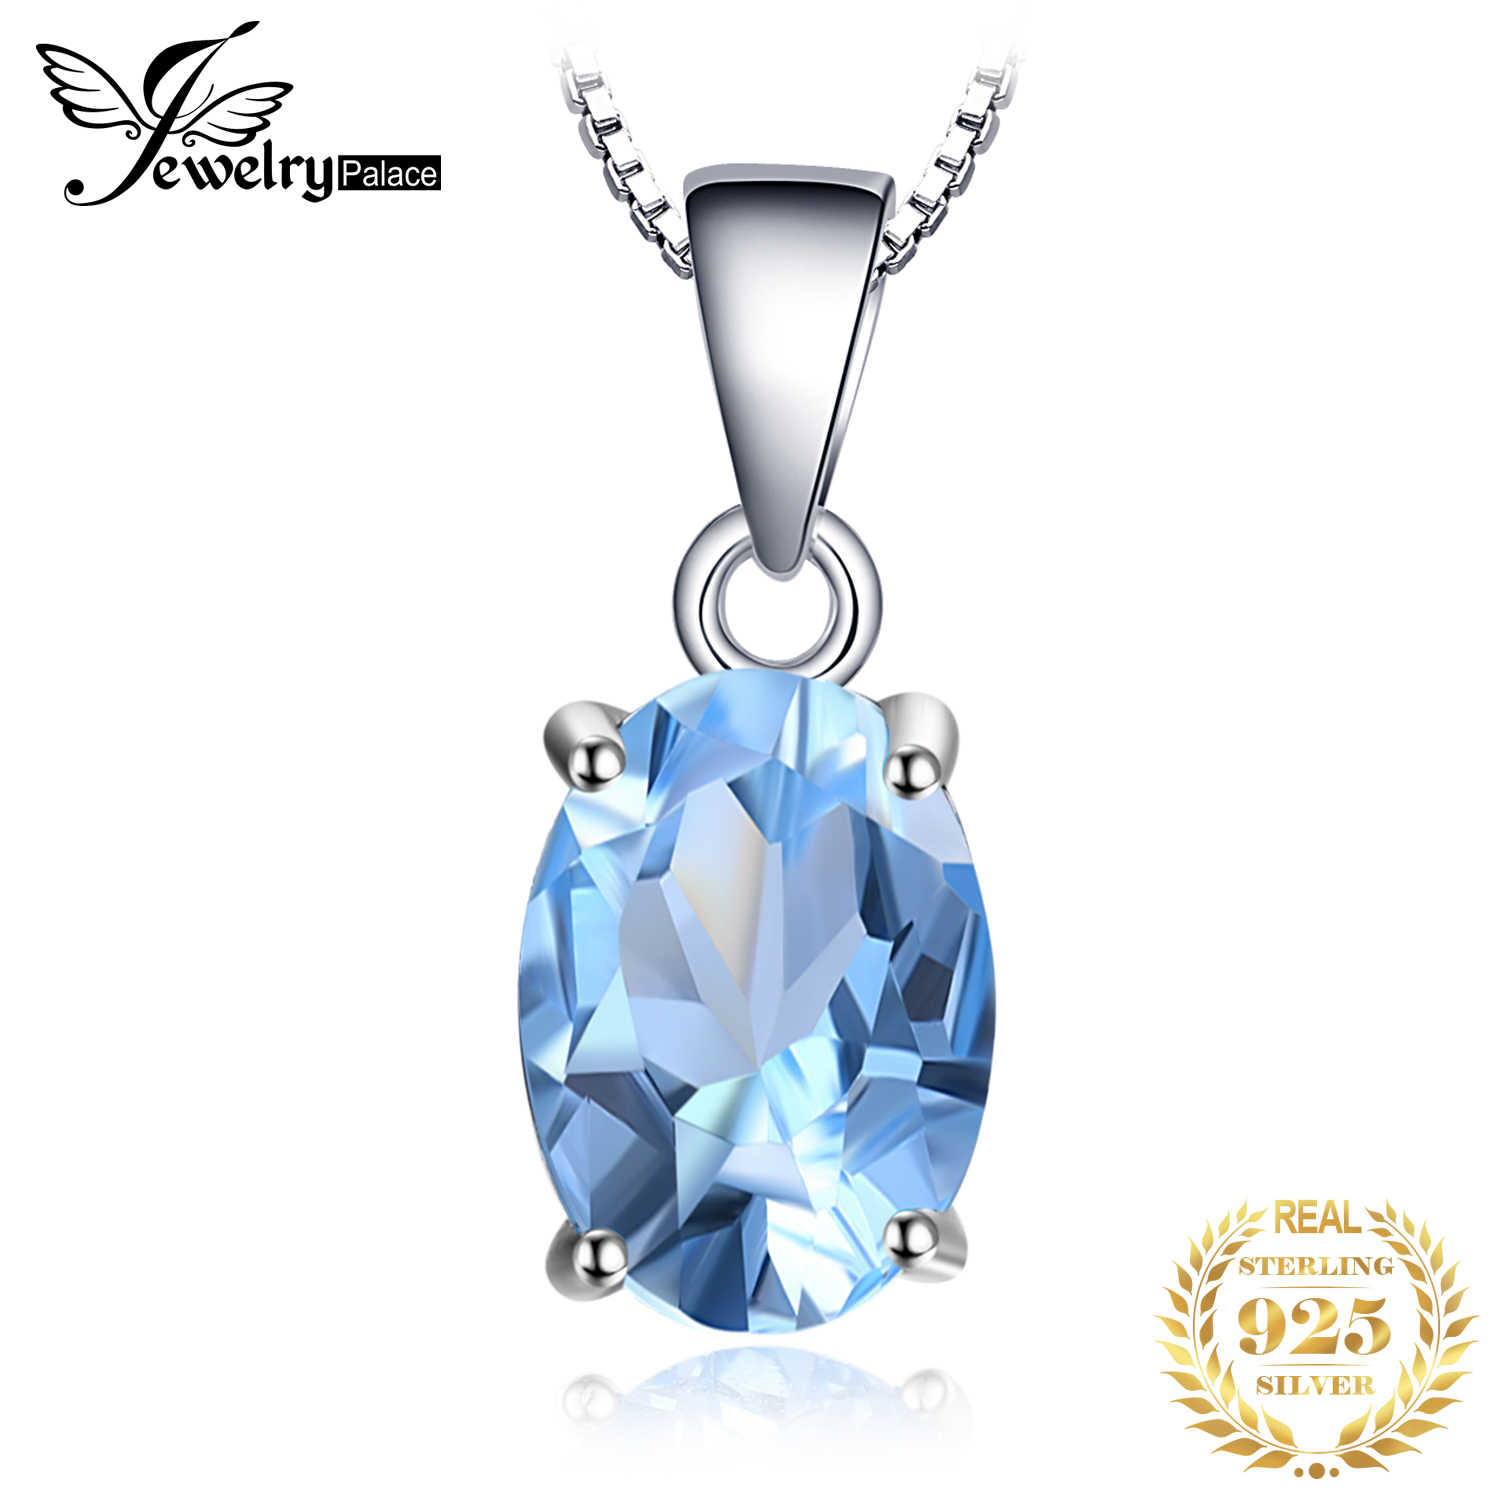 JewelryPalace Oval 2.1ct ท้องฟ้าสีฟ้าพลอย Topaz Solitaire จี้ Solid 925 Sterling เงินไม่มีโซ่เครื่องประดับ